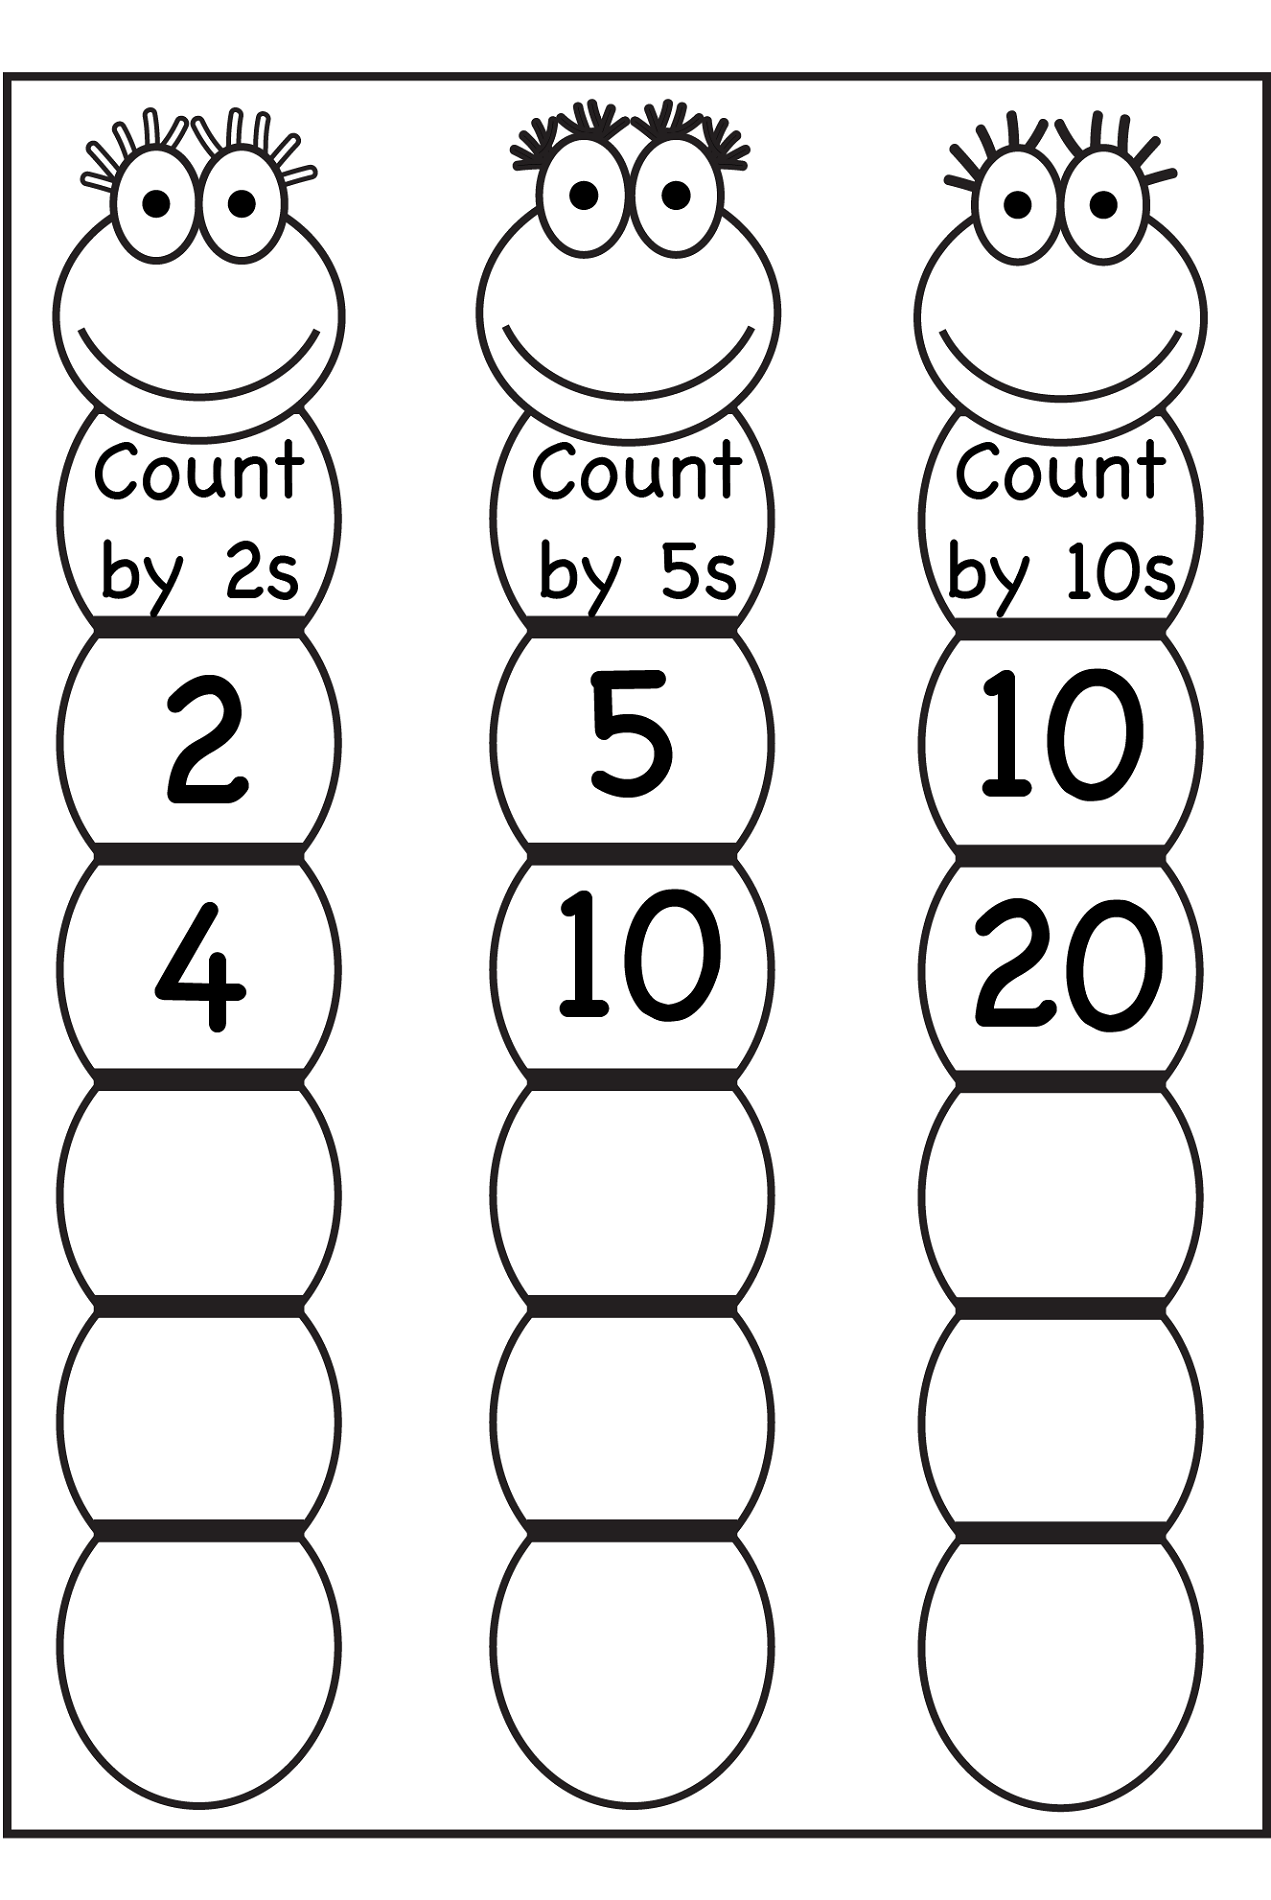 Worksheet For Kindergarten Skip Counting